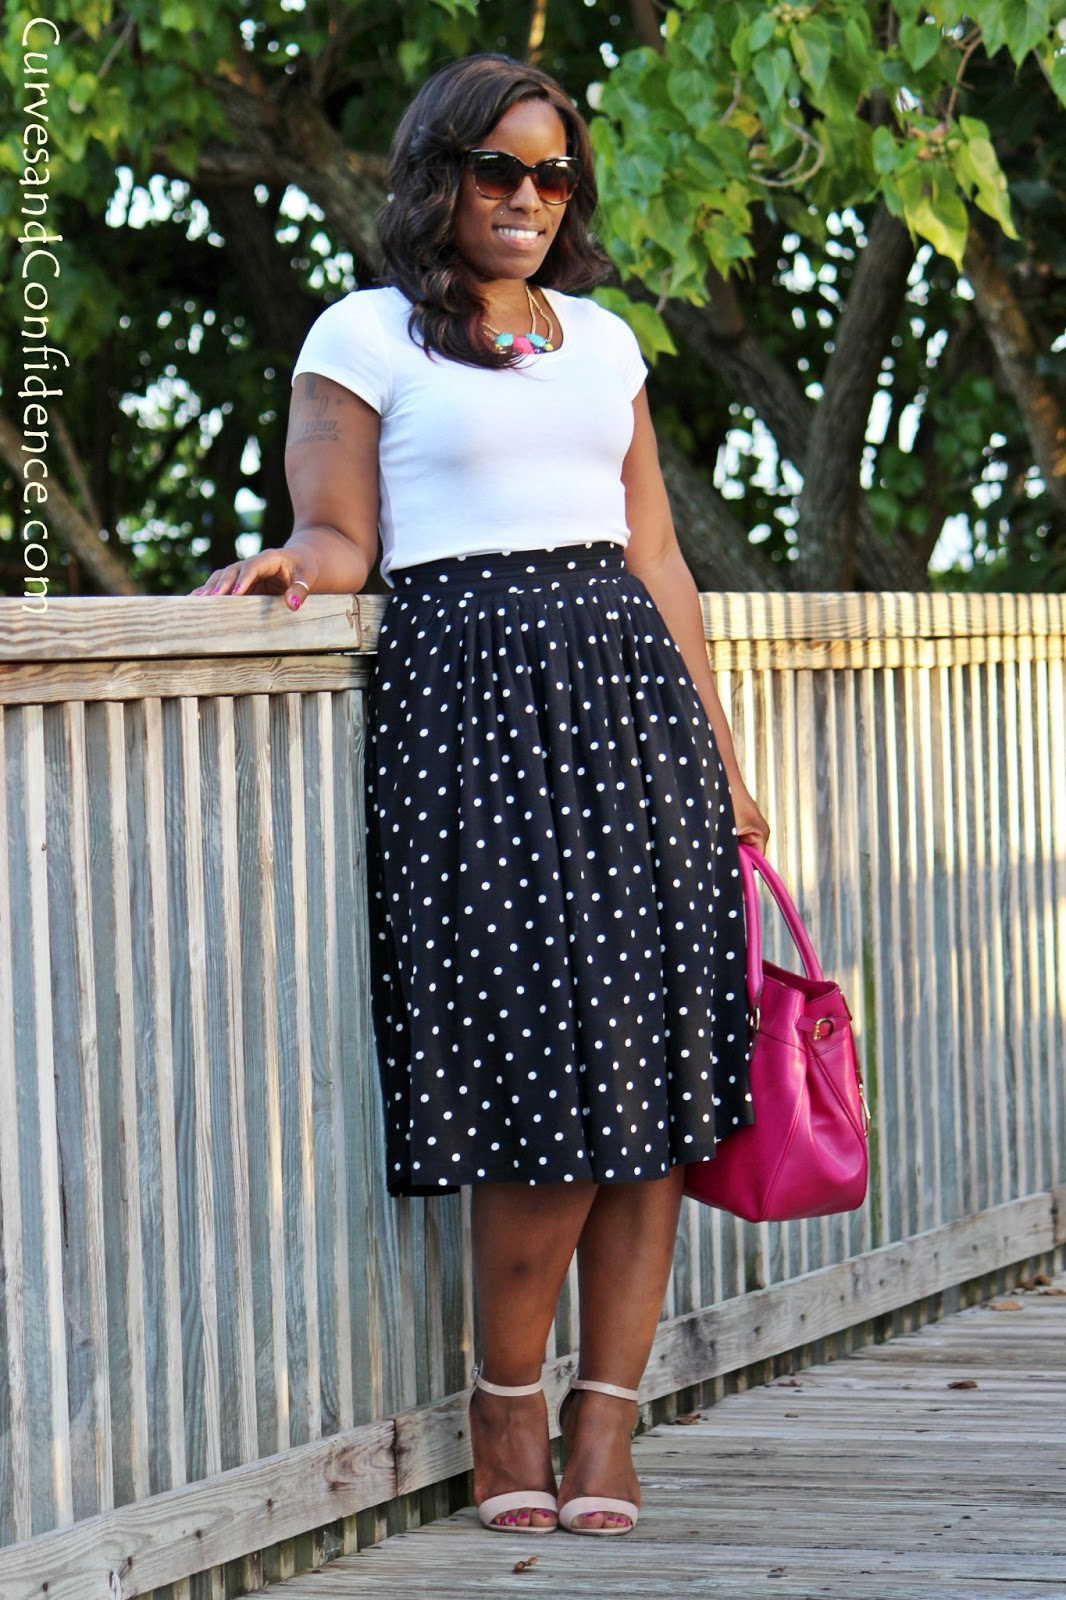 Skirts and Tee Shirts - Curves and Confidence - photo#36